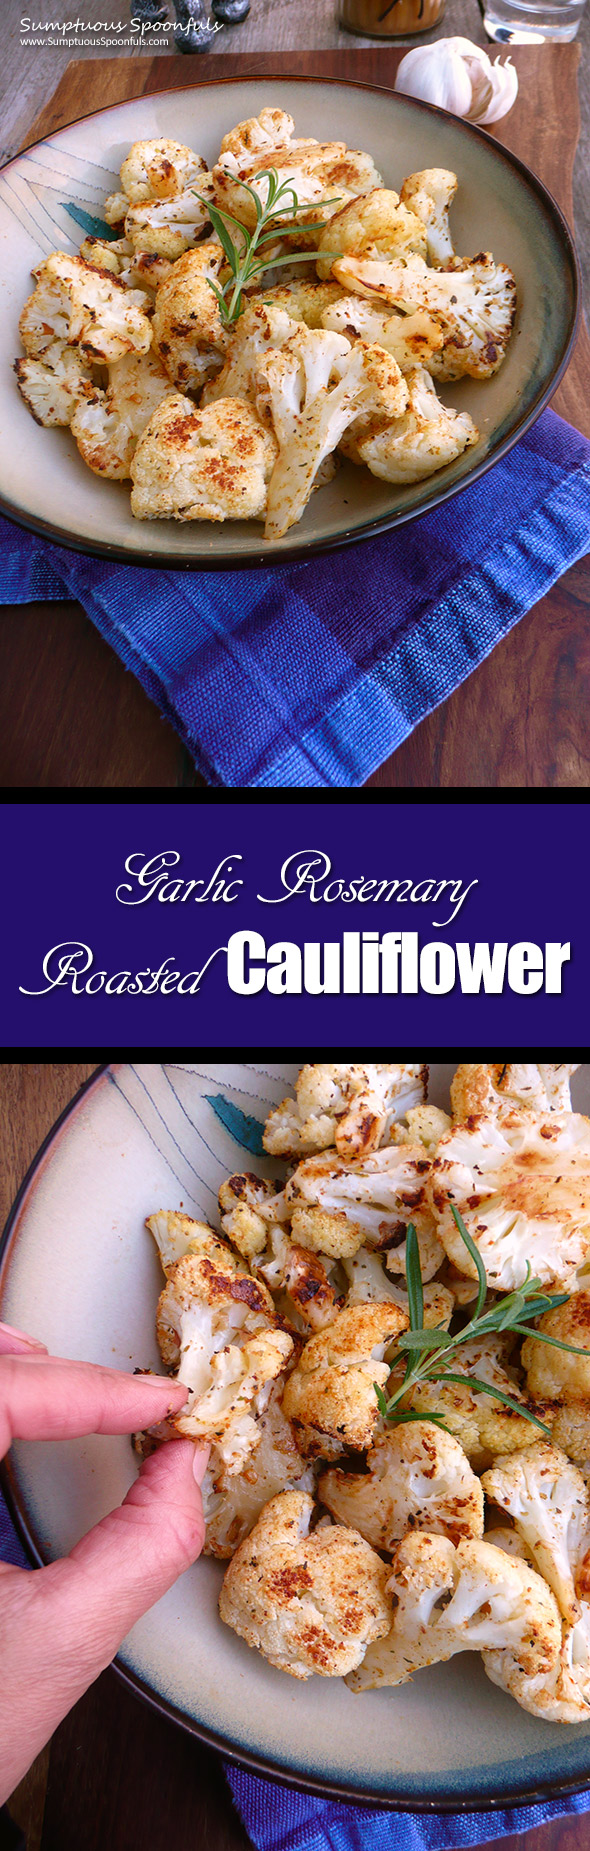 Garlic Rosemary Roasted Cauliflower ~ Sumptuous Spoonfuls #crispy #cauliflower #recipe